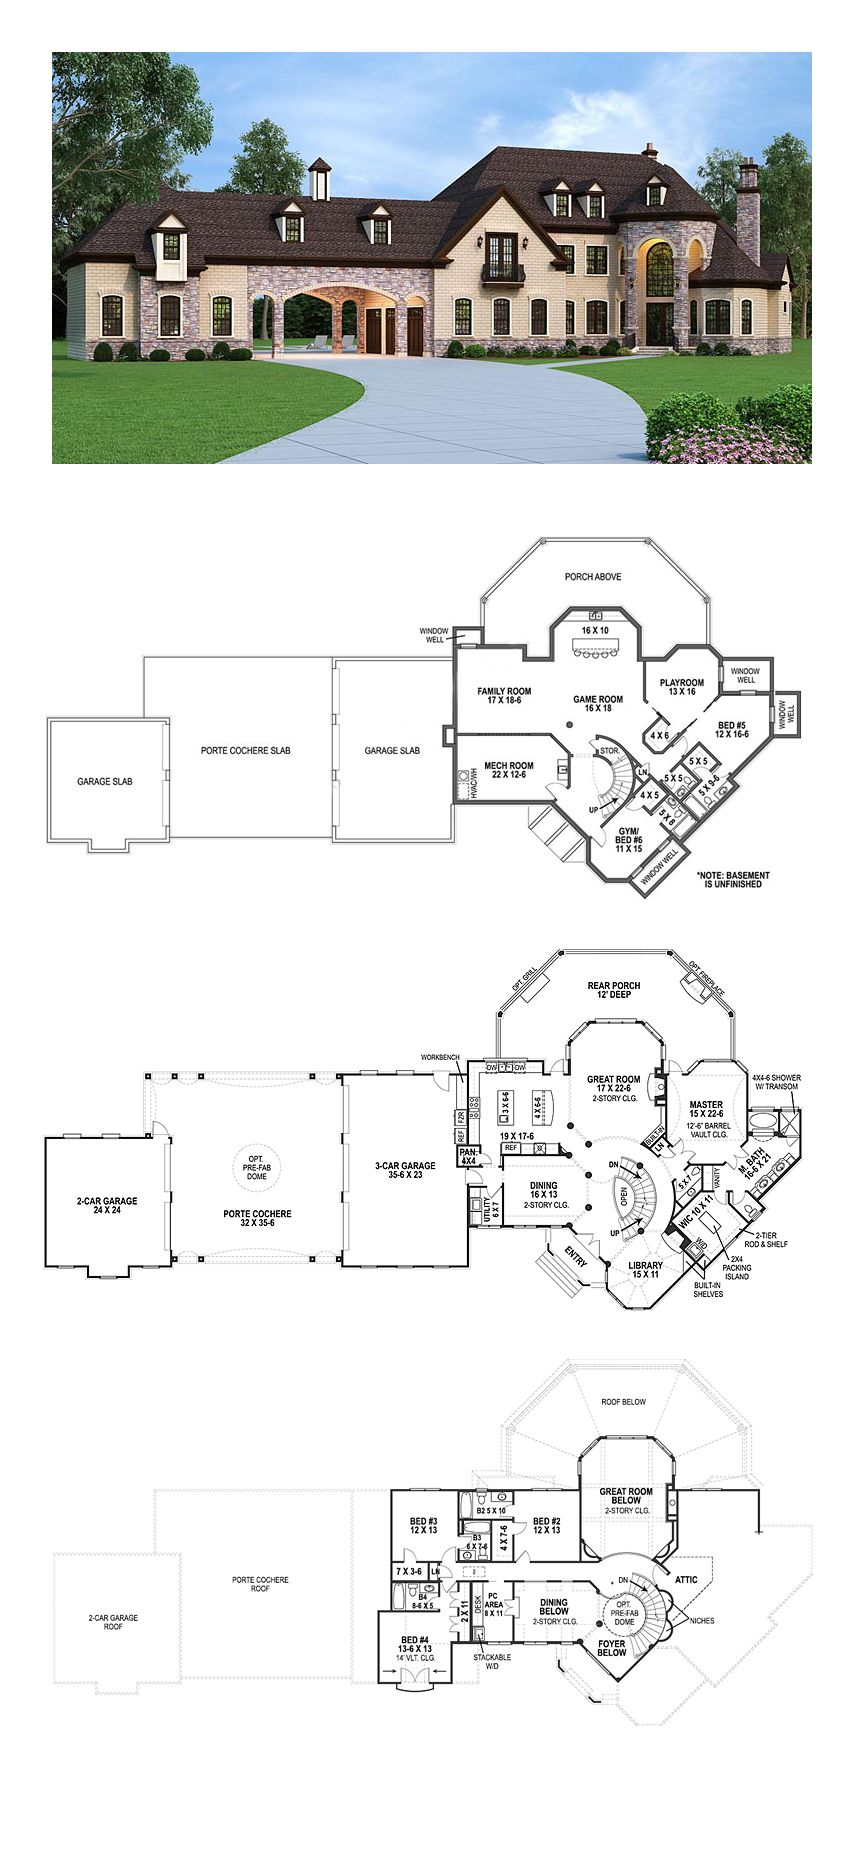 French Country Style House Plan 72226 With 5 Bed 5 Bath 5 Car Garage Country Style House Plans French Country House Plans French Country House